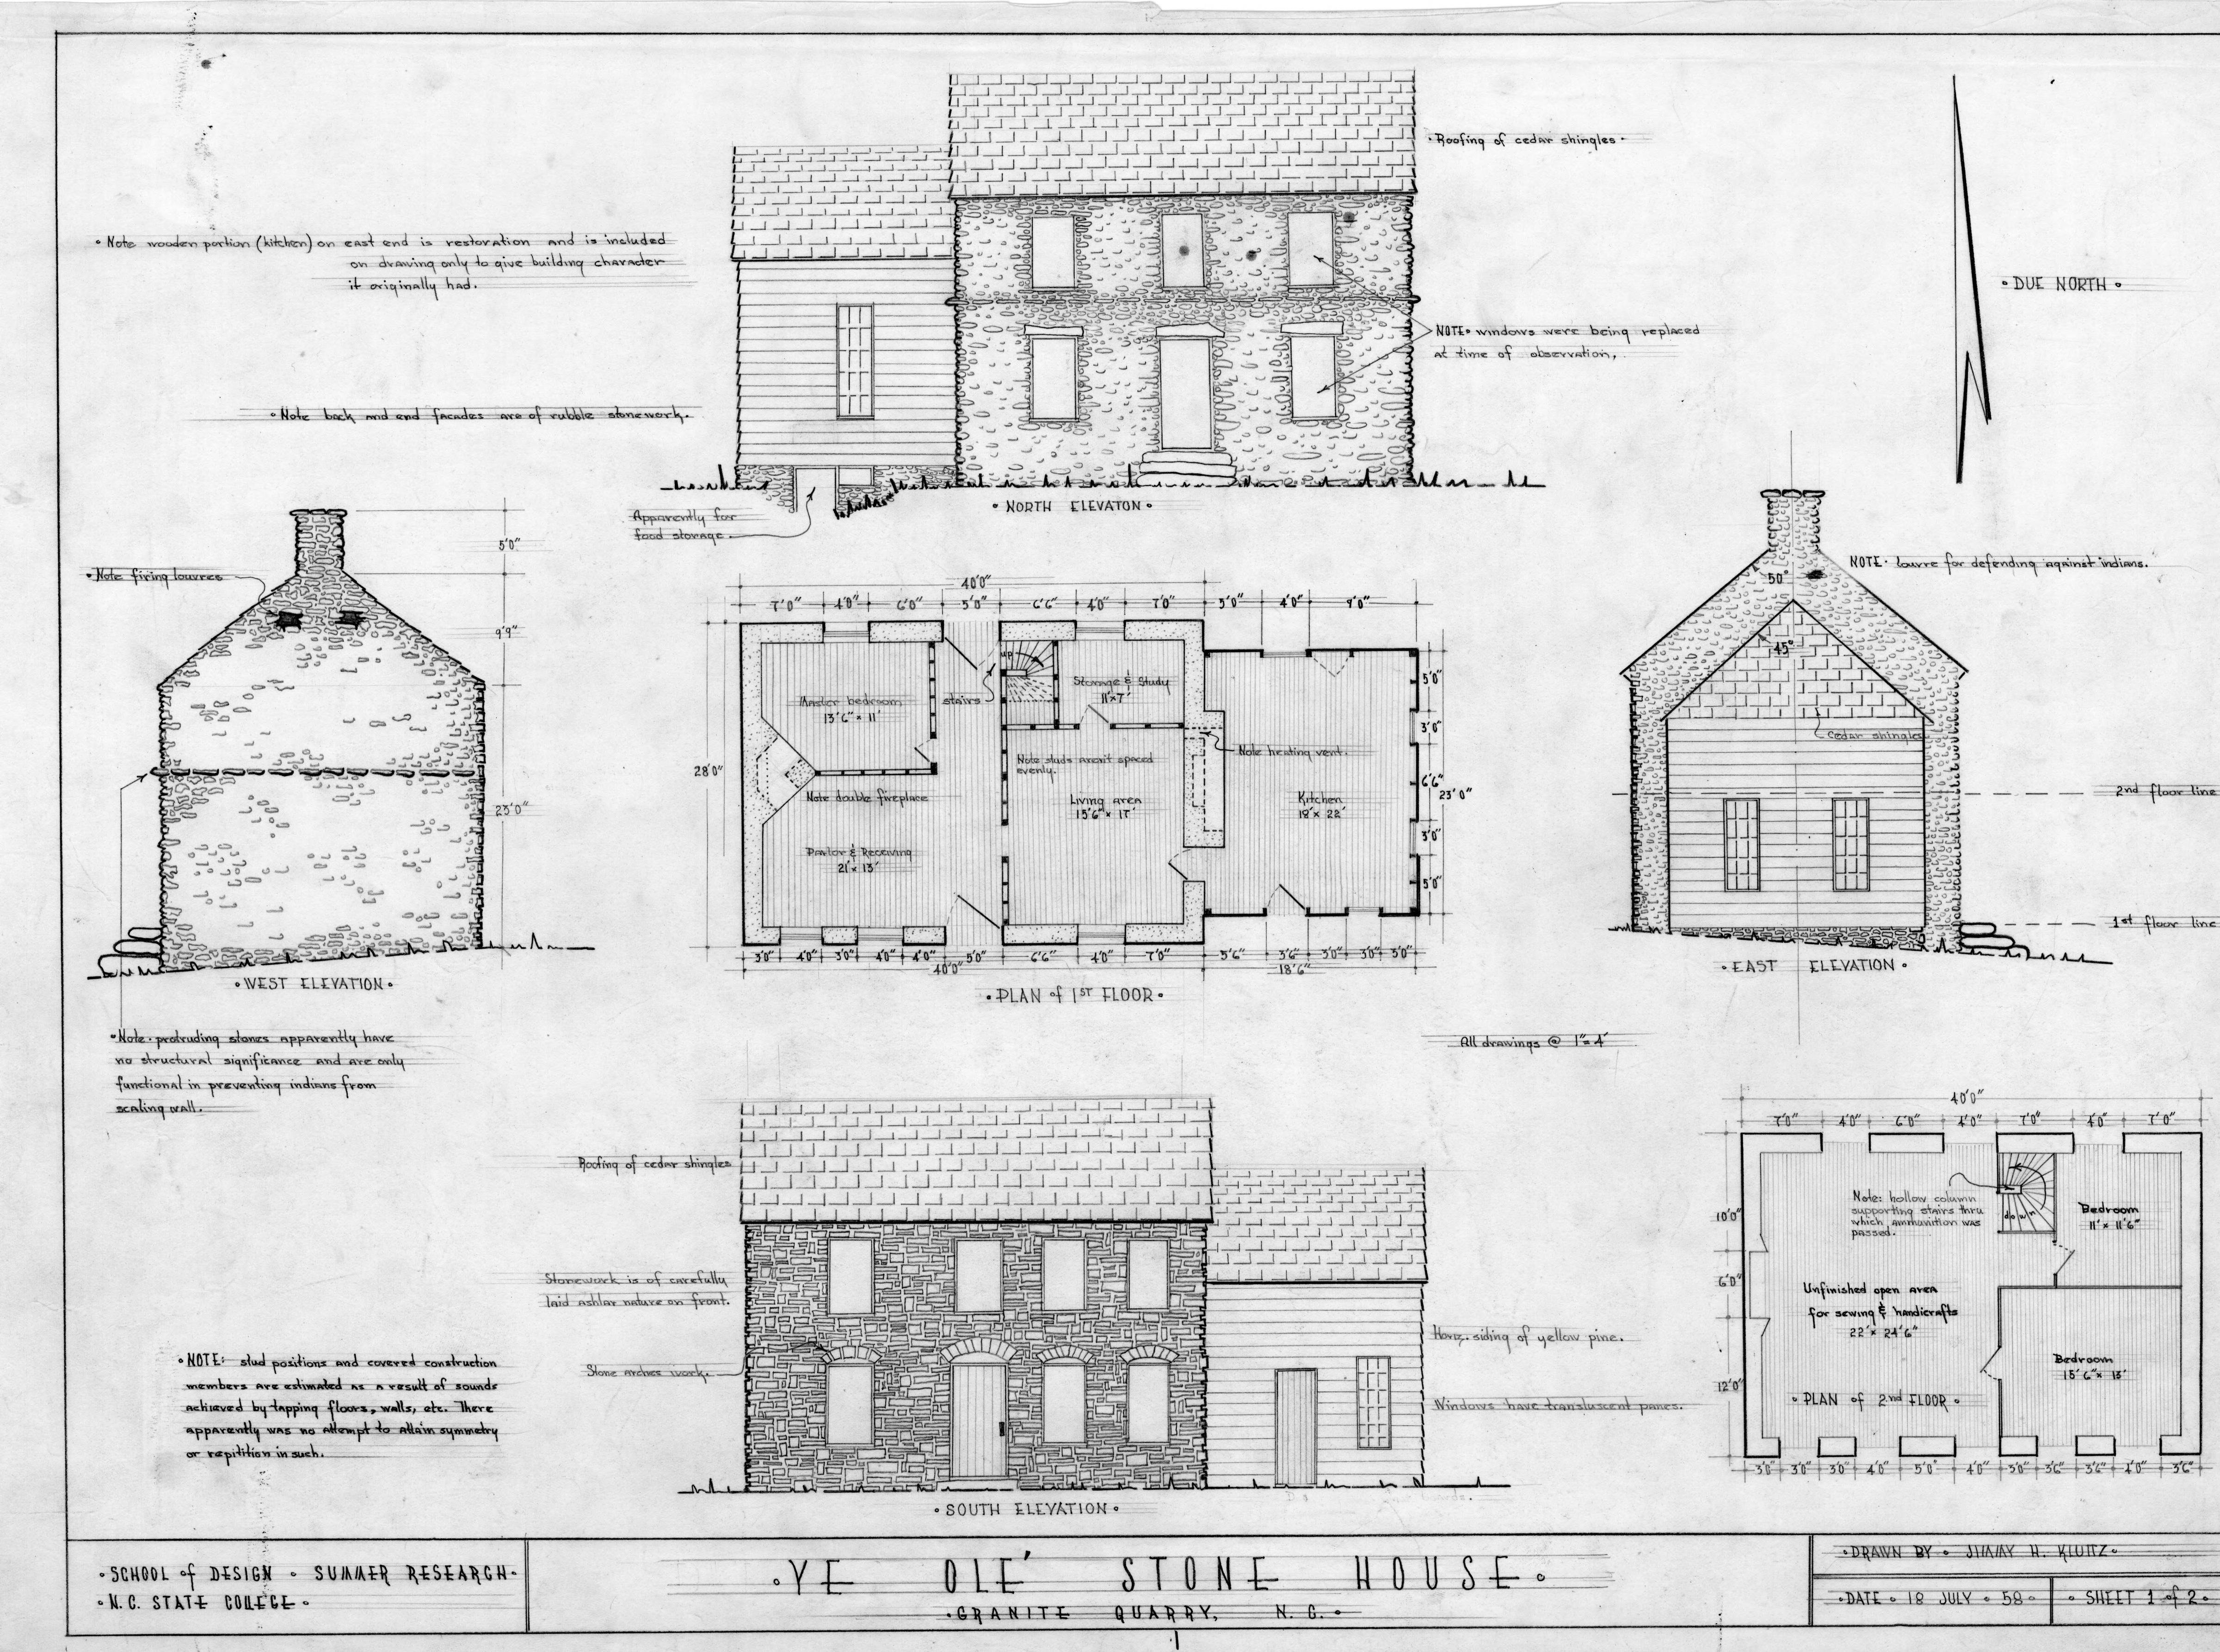 Floor Plan And Elevation Of A House : Elevations and floor plans michael braun house rowan